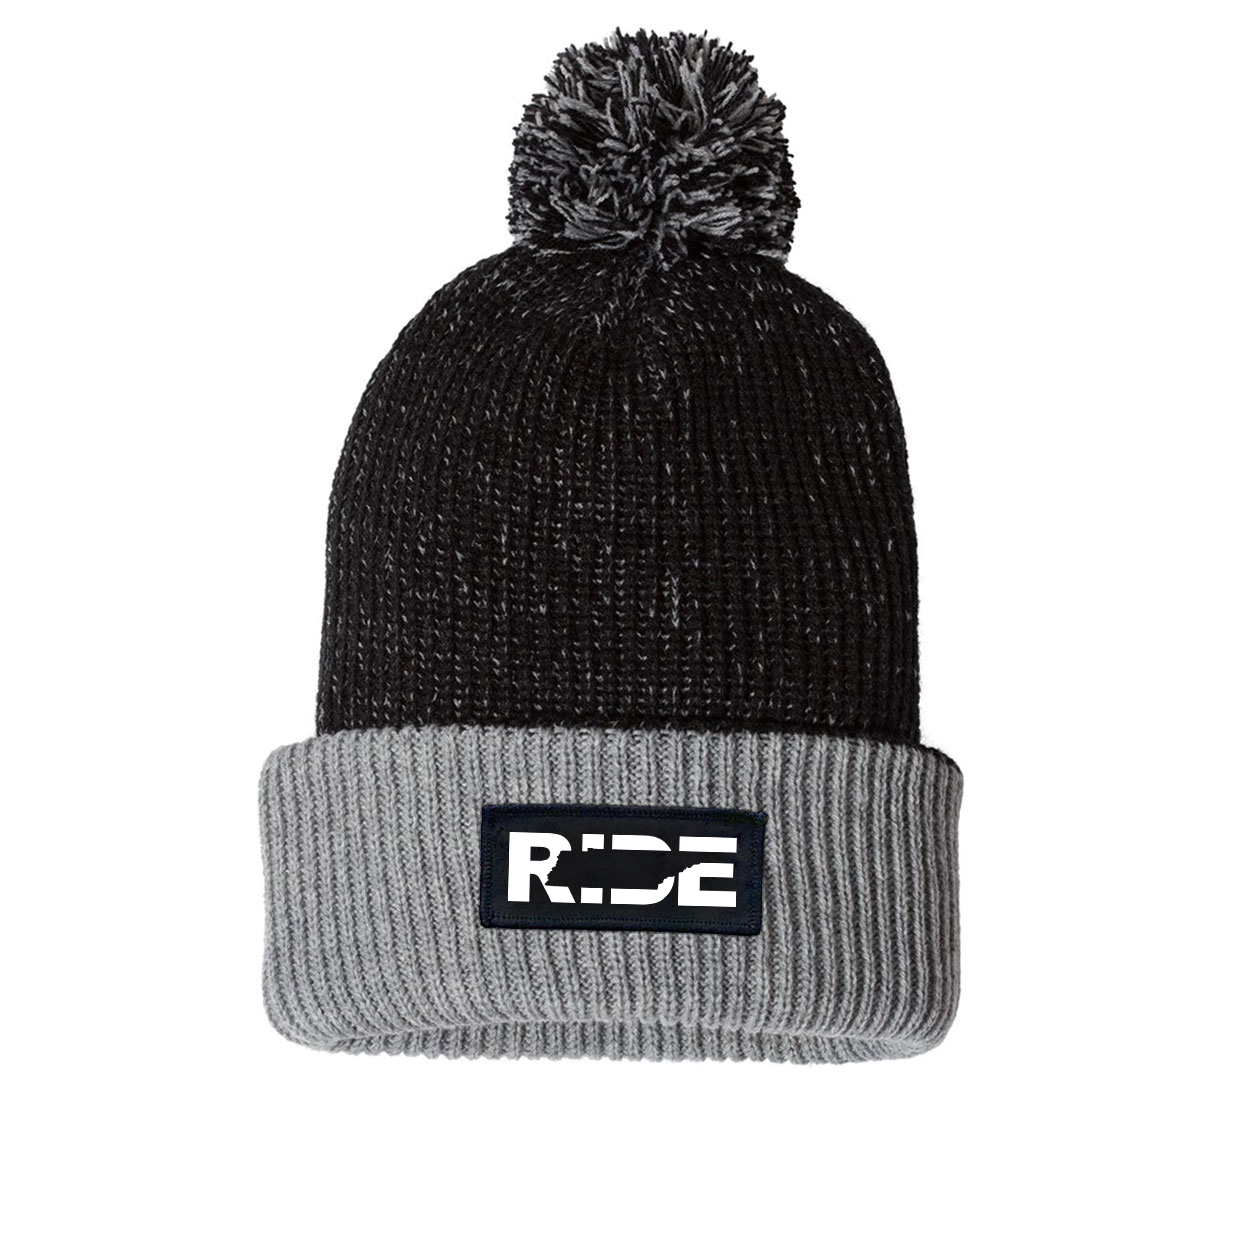 Ride Tennessee Night Out Woven Patch Roll Up Pom Knit Beanie Black/Gray (White Logo)